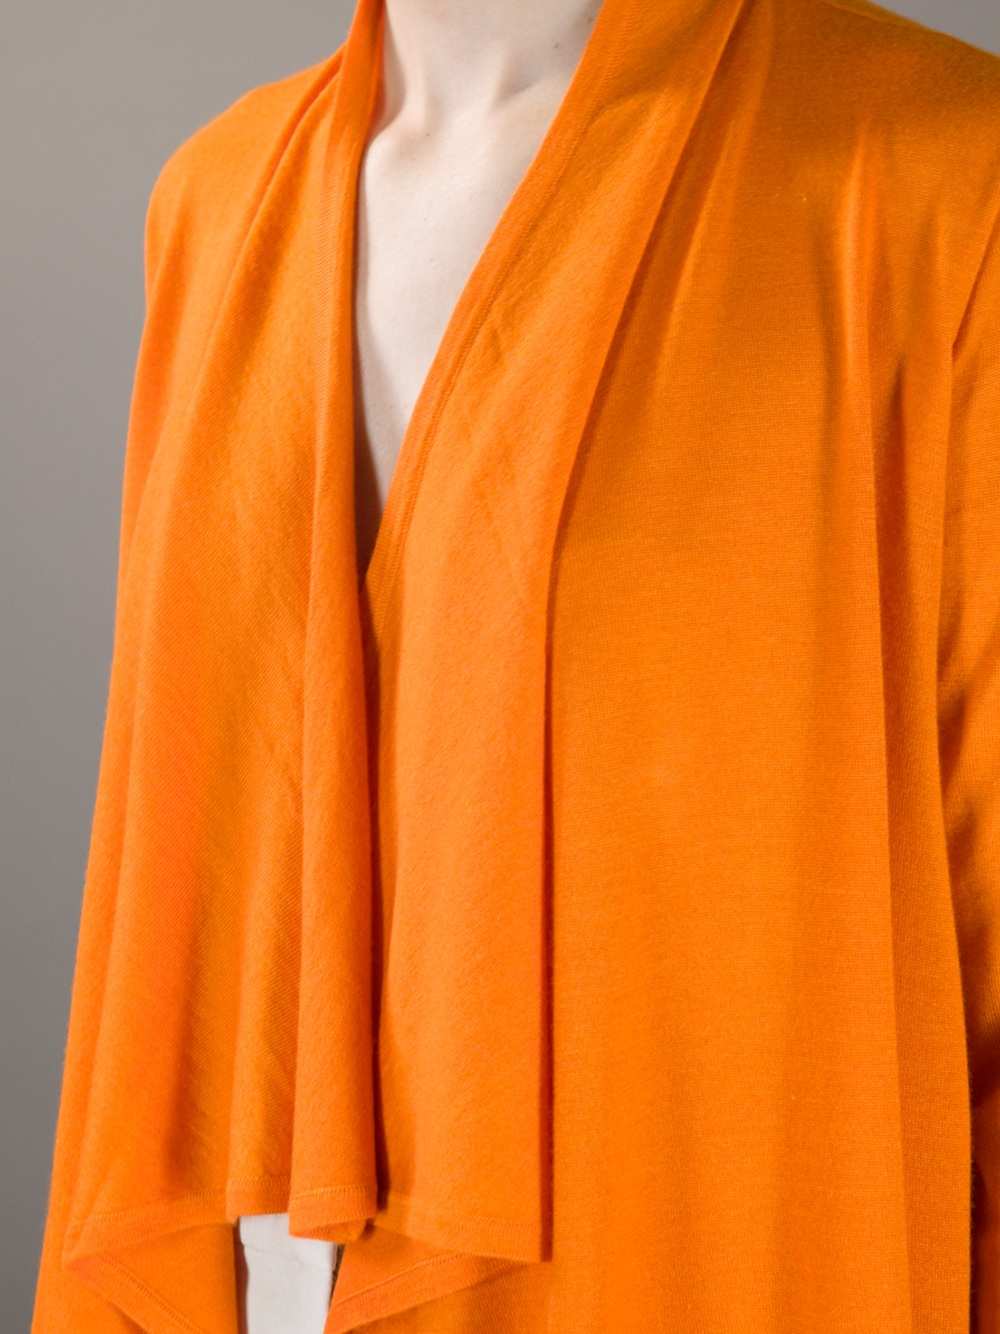 Ralph lauren black label Waterfall Cardigan in Orange | Lyst